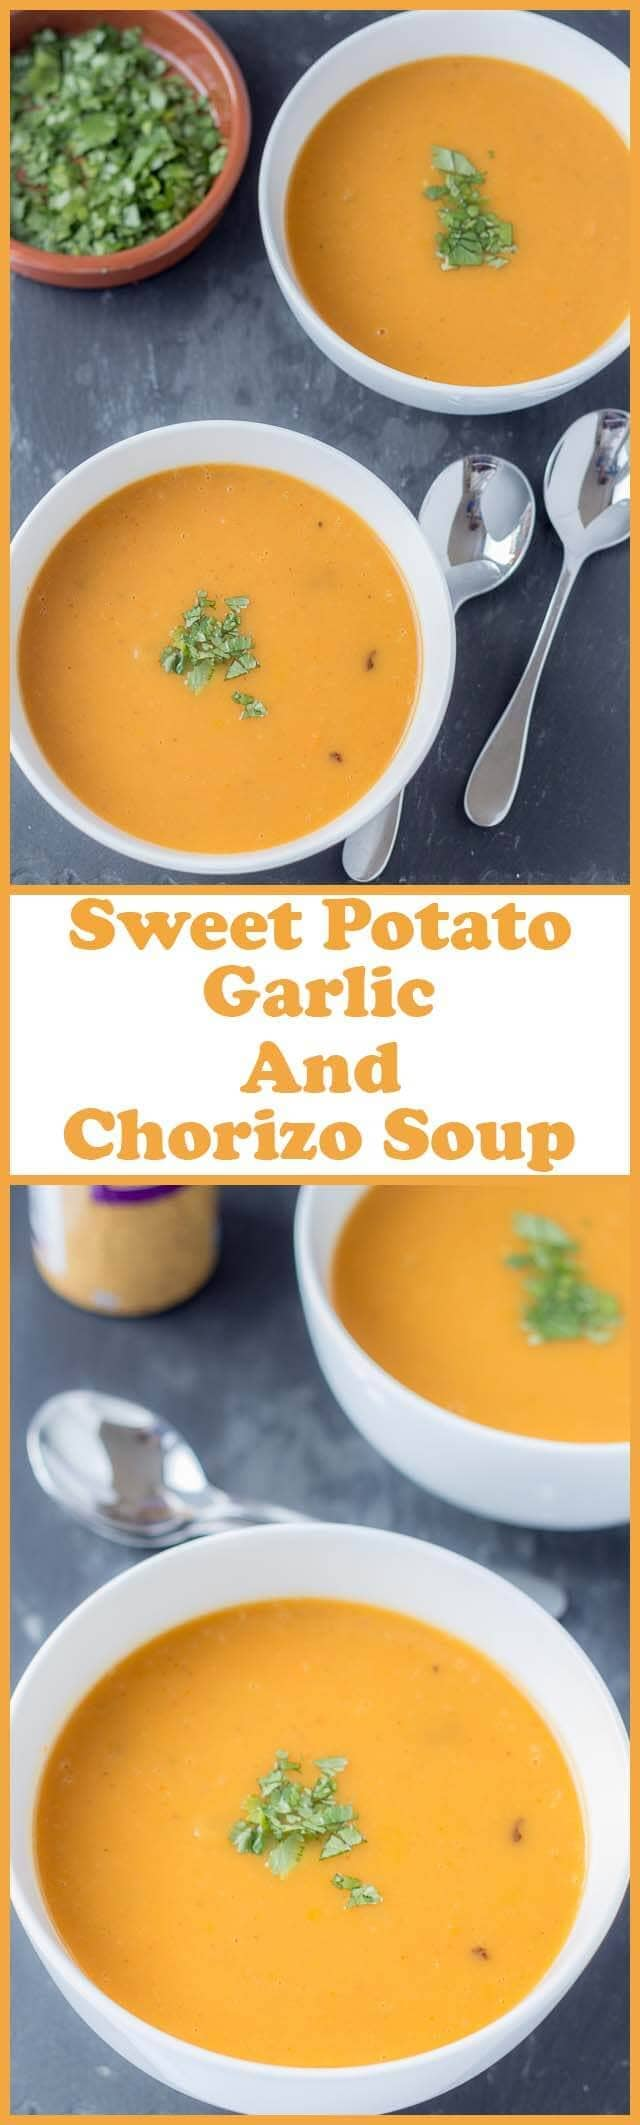 Sweet Potato Garlic and Chorizo Soup - Neils Healthy Meals